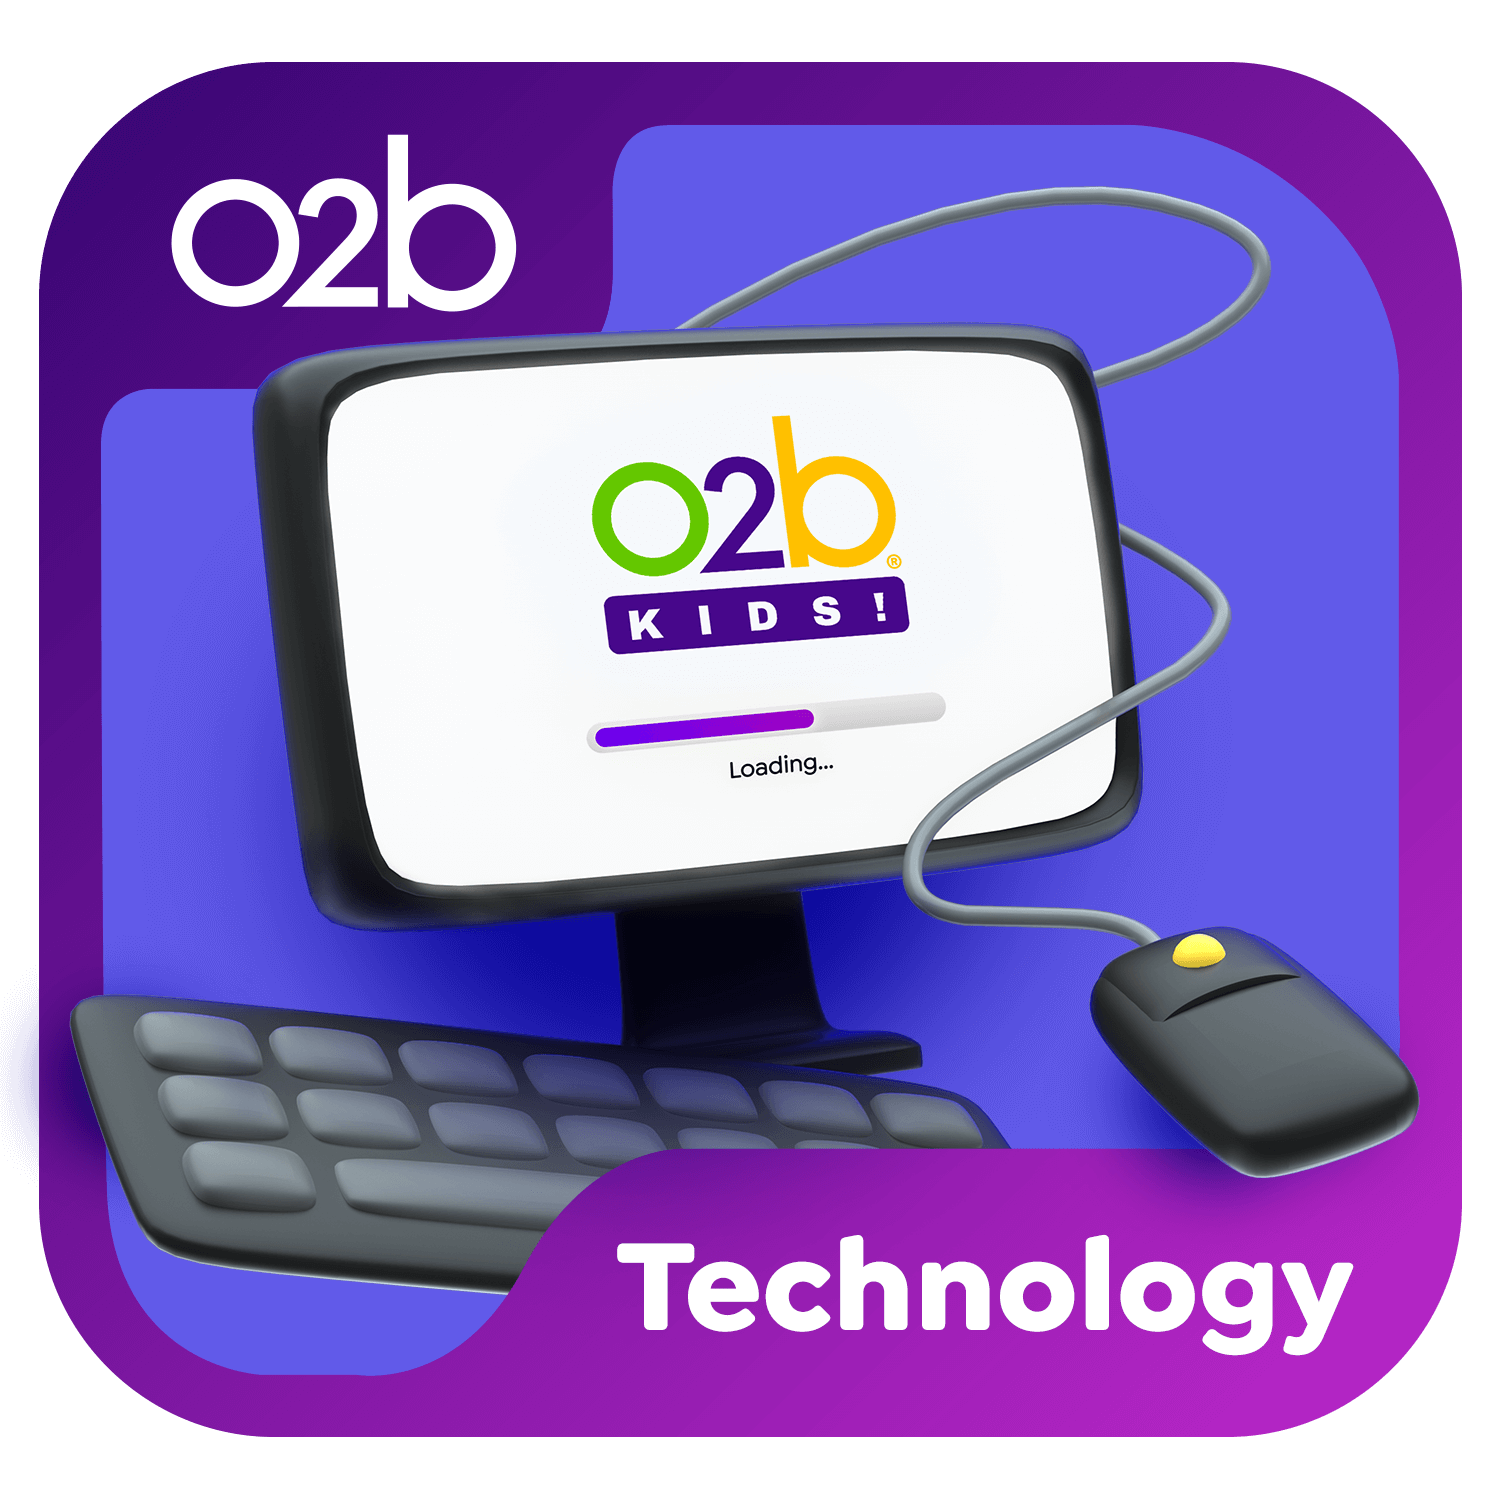 3D illustrated computer icon with a mouse wrapped around it. Also includes a keyboard. Computer monitor has a loading screen on it with the O2B Kids logo. Technology icon.